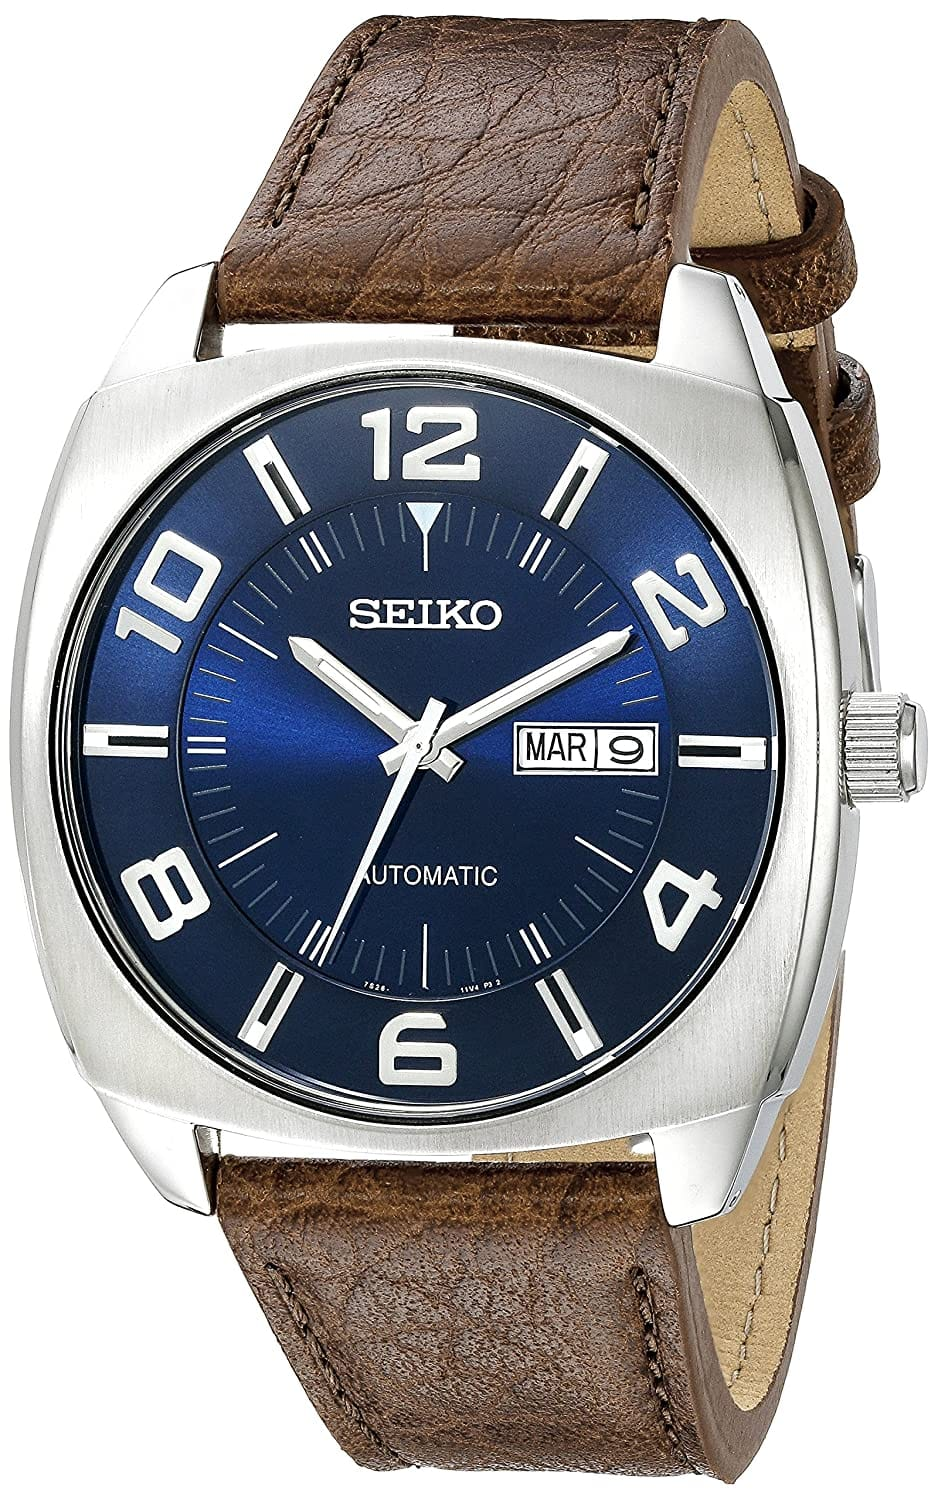 Seiko Men's SNKN37 Stainless Steel Automatic Self-Wind Watch with Brown Leather Band - Amazon $98.98 Free Shipping and return